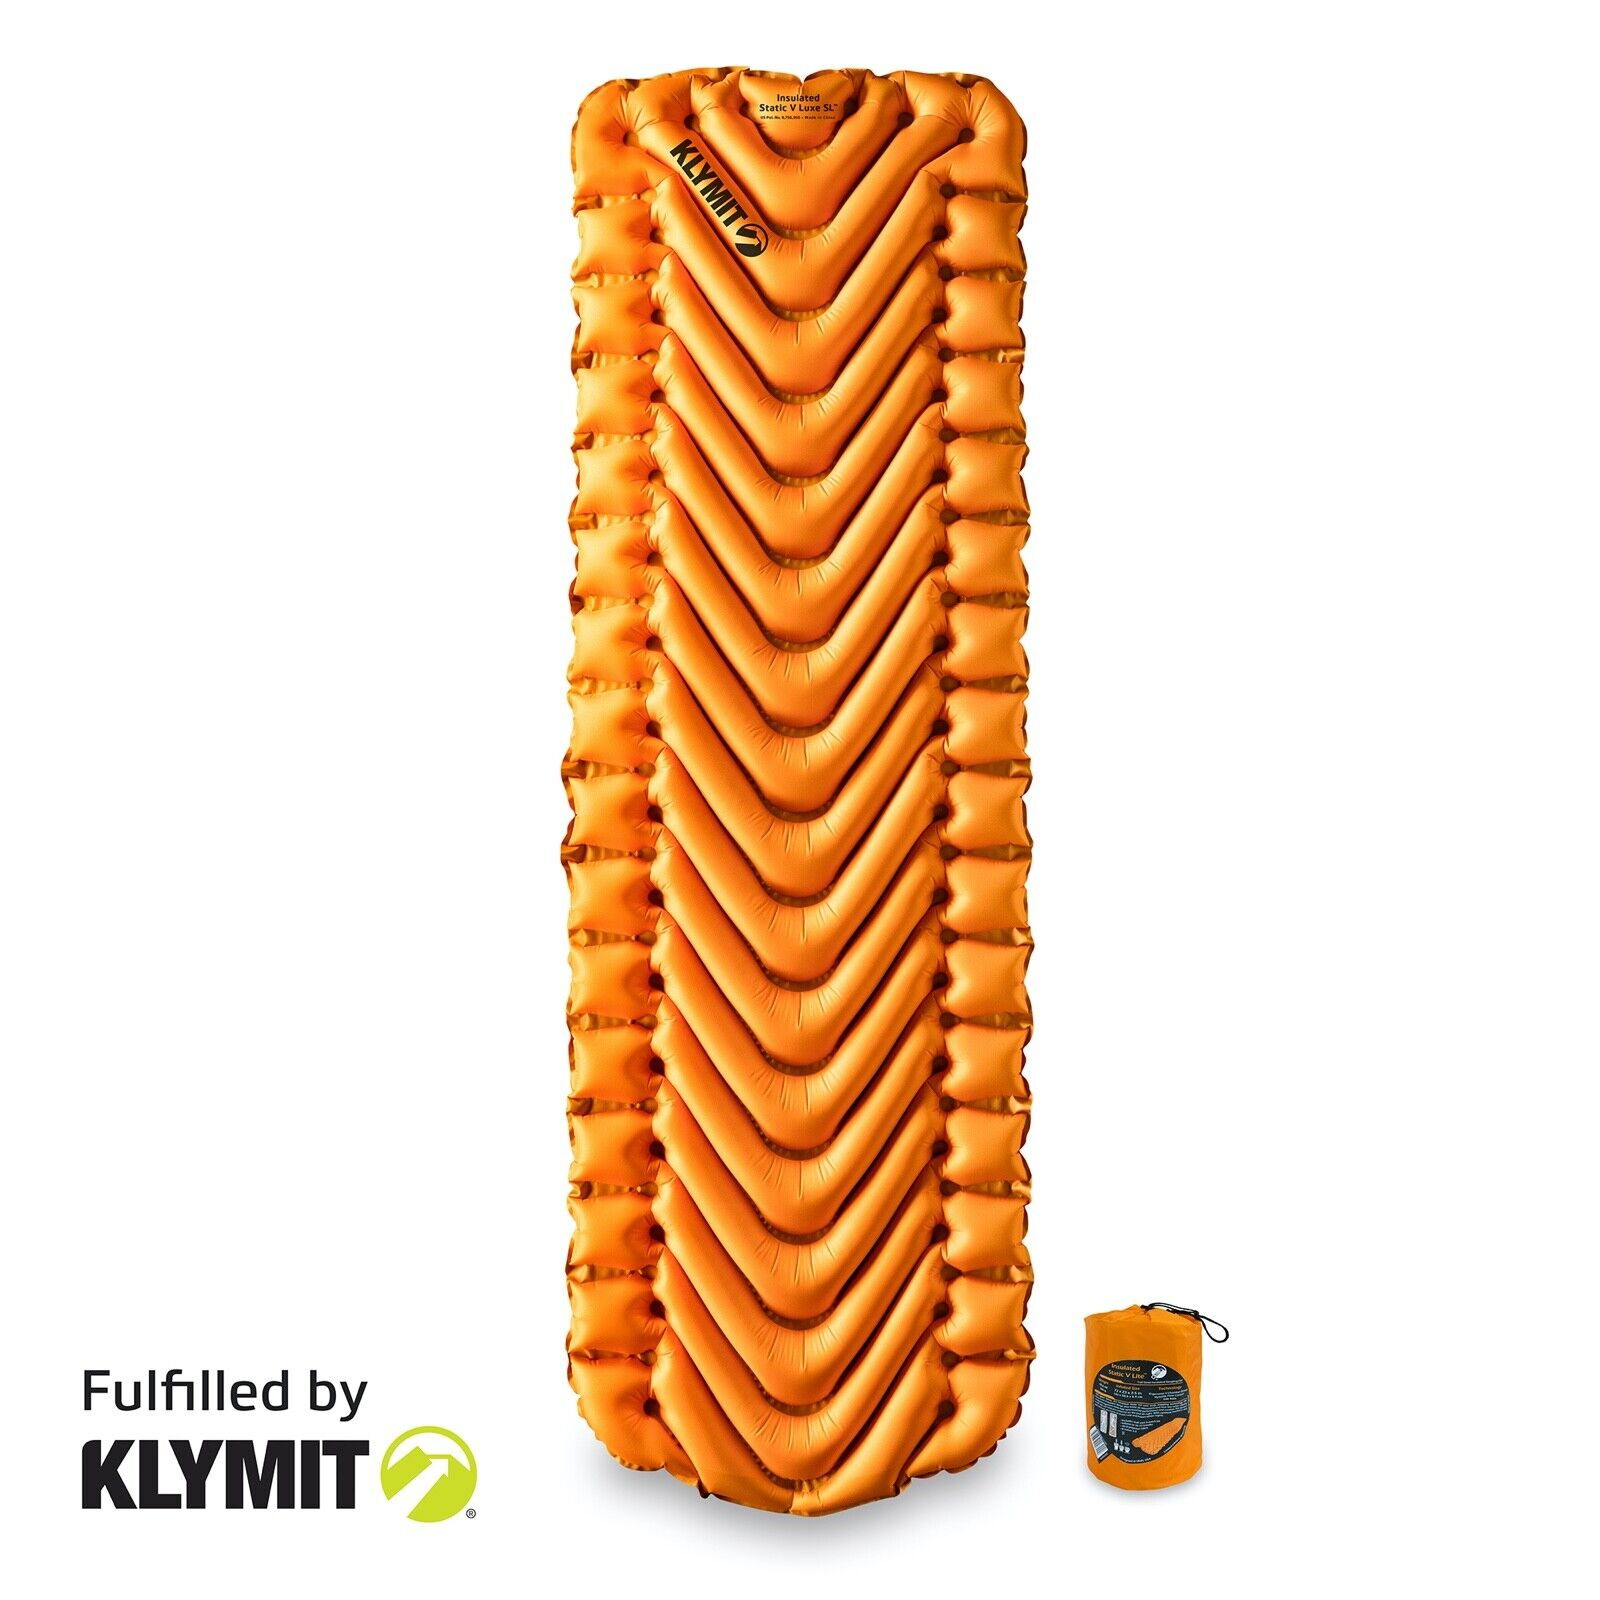 Klymit Insulated Static V Lite Camping Sleeping Pad - Certified Refurbished